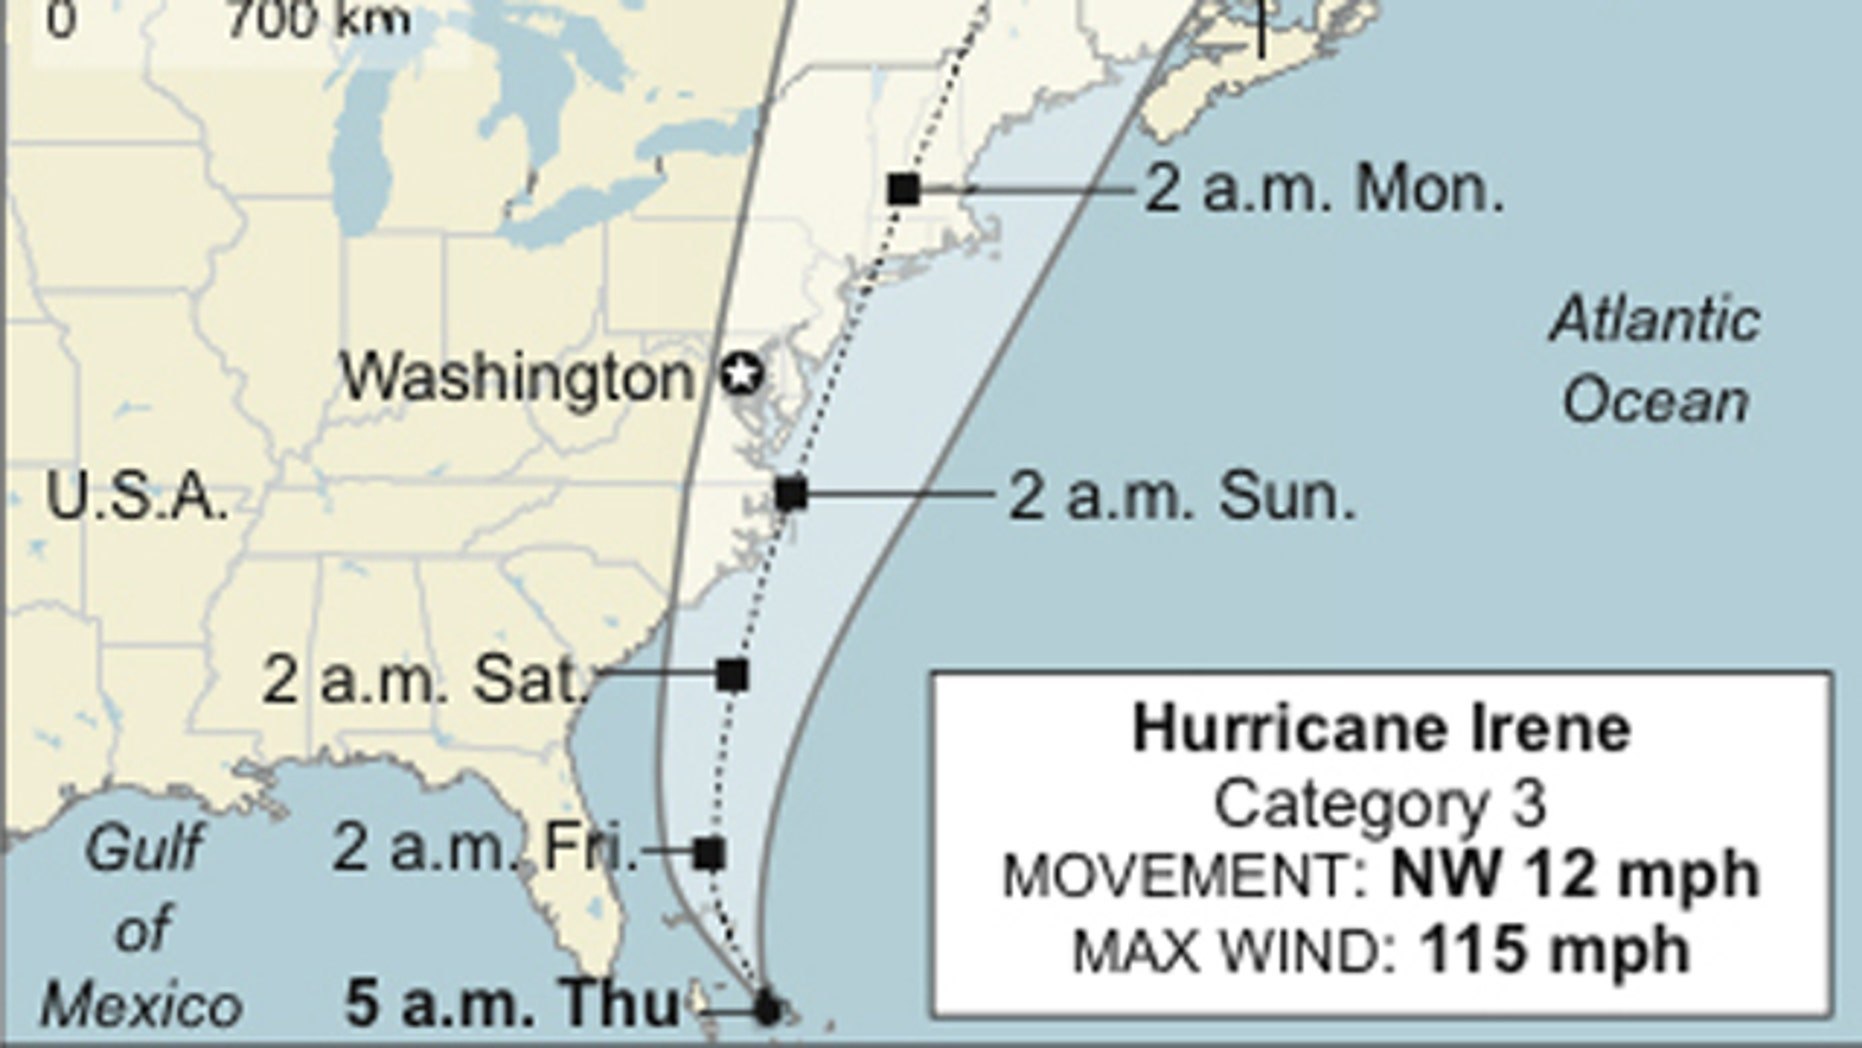 Map shows Hurricane Ireneâs location and predicted path, updated as of 5 a.m. EDT Thursday